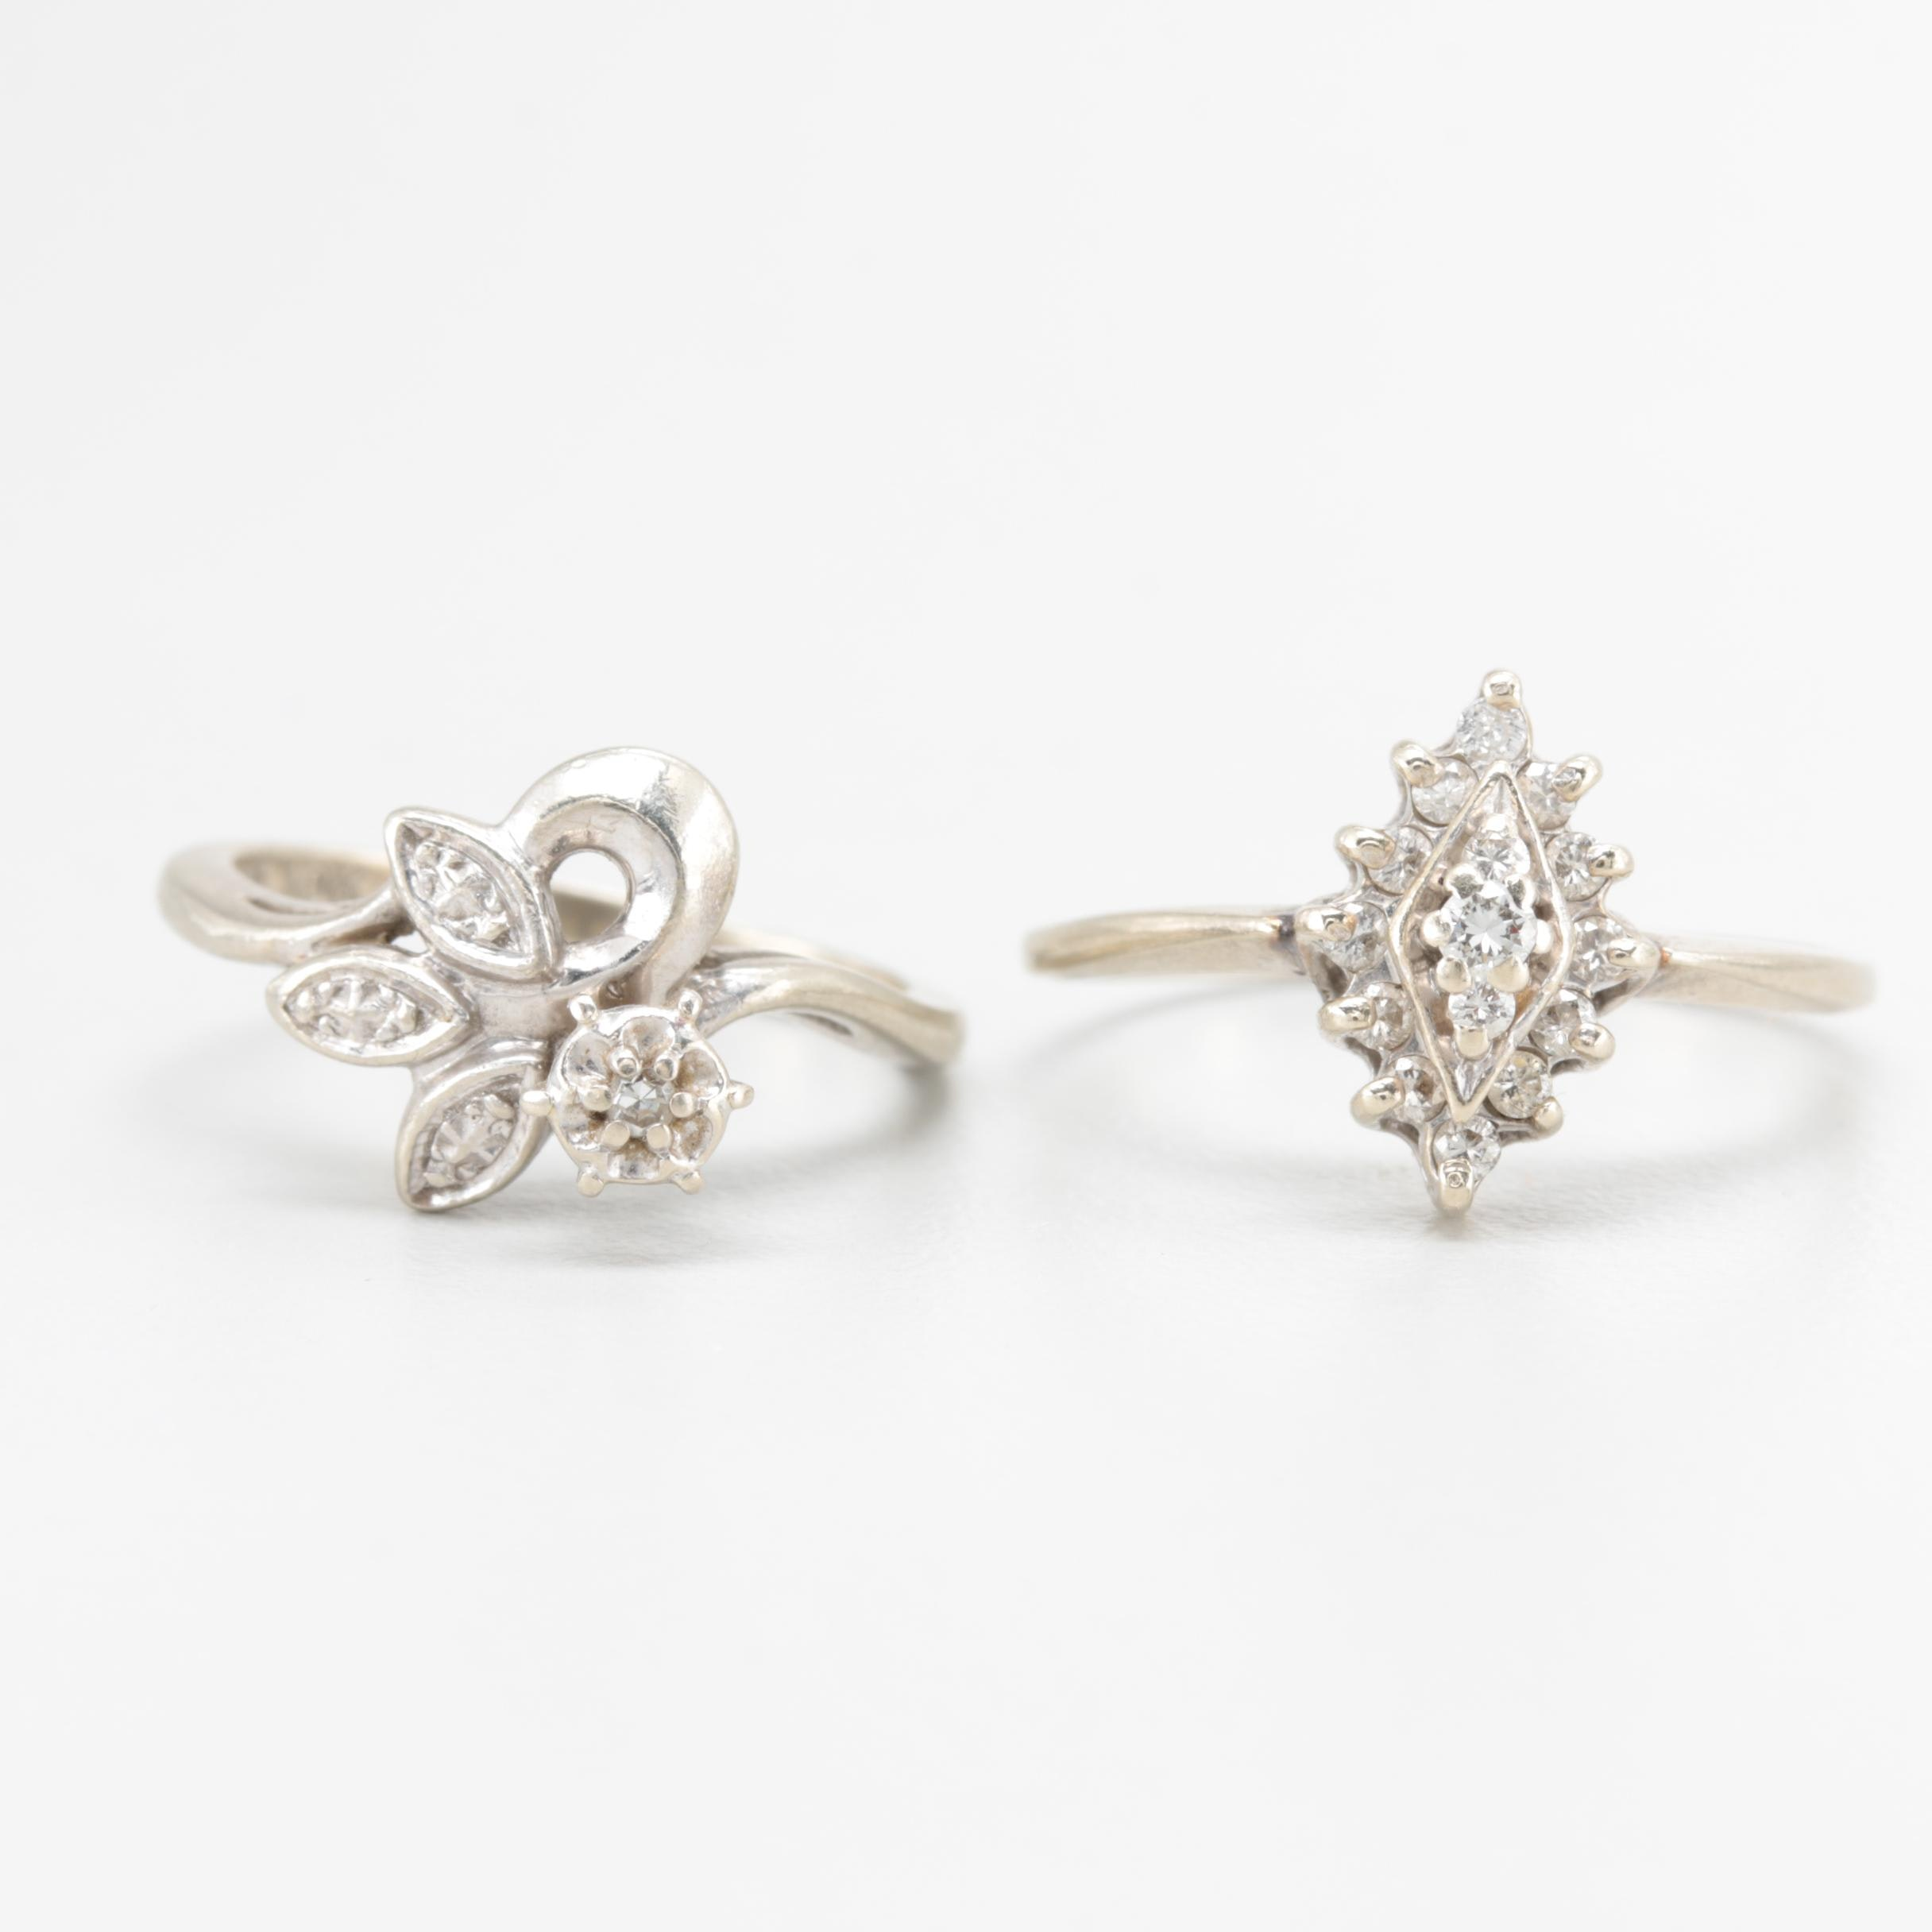 10K and 14K White Gold Diamond Ring Selection